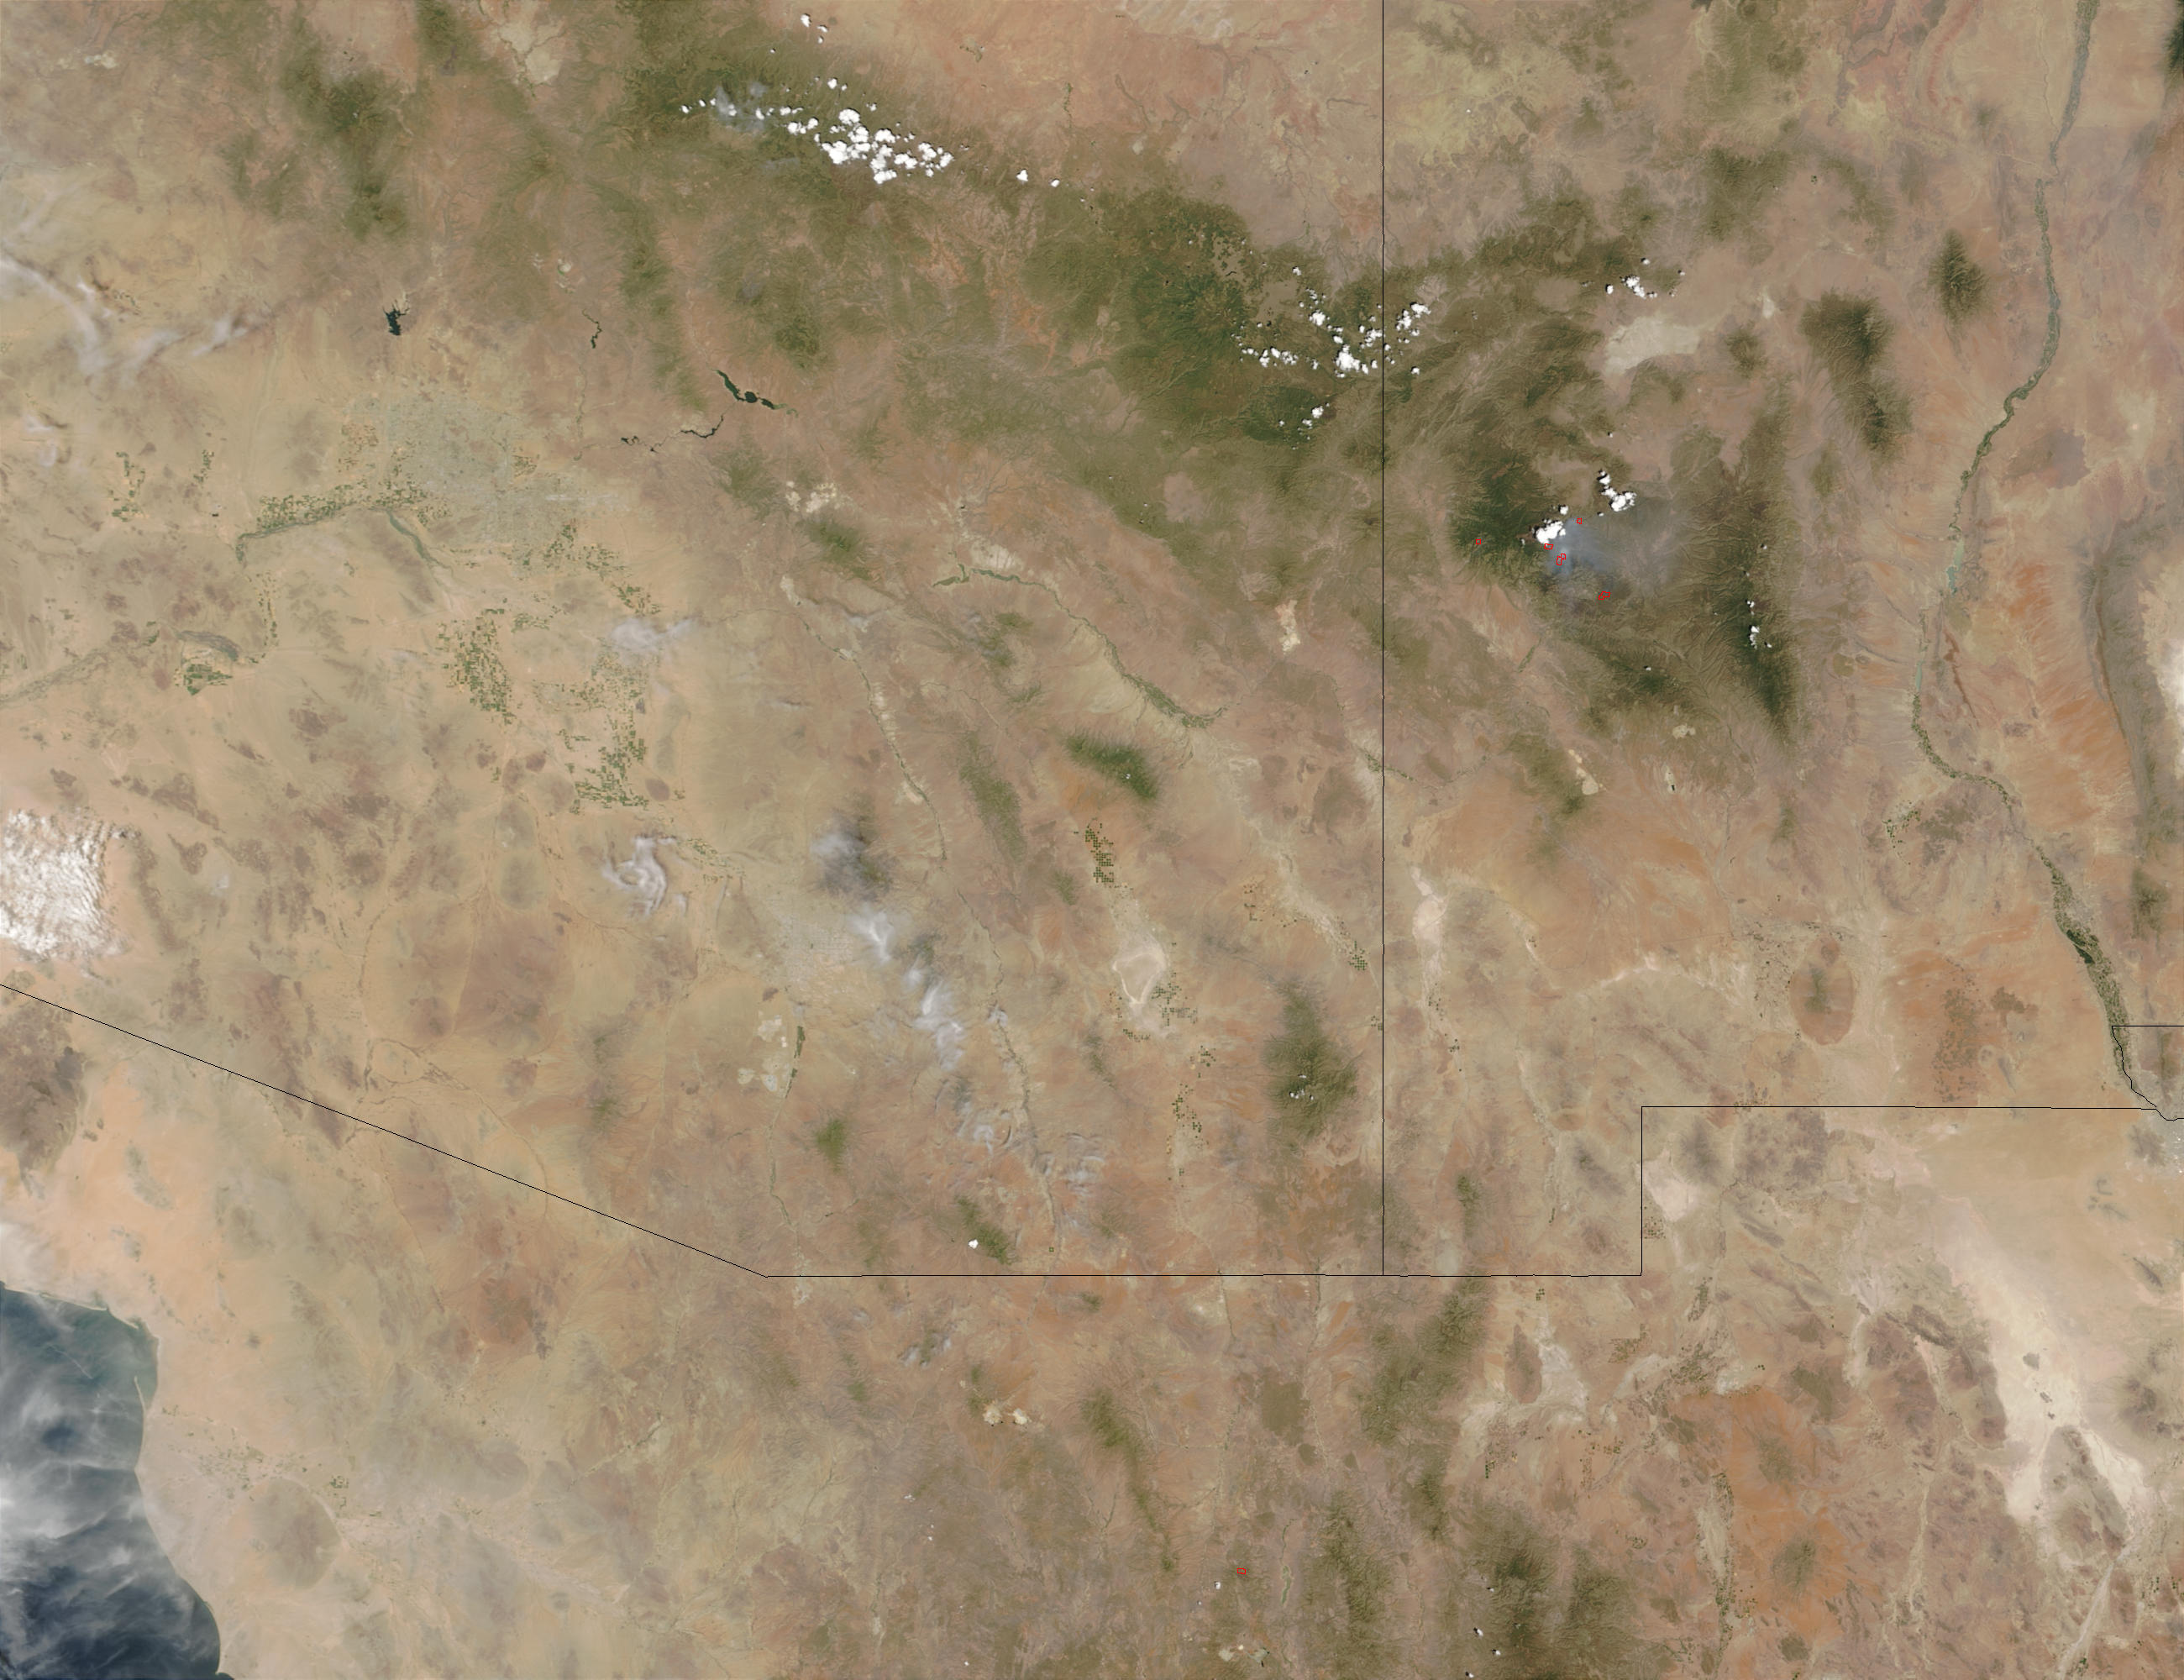 Fires in New Mexico